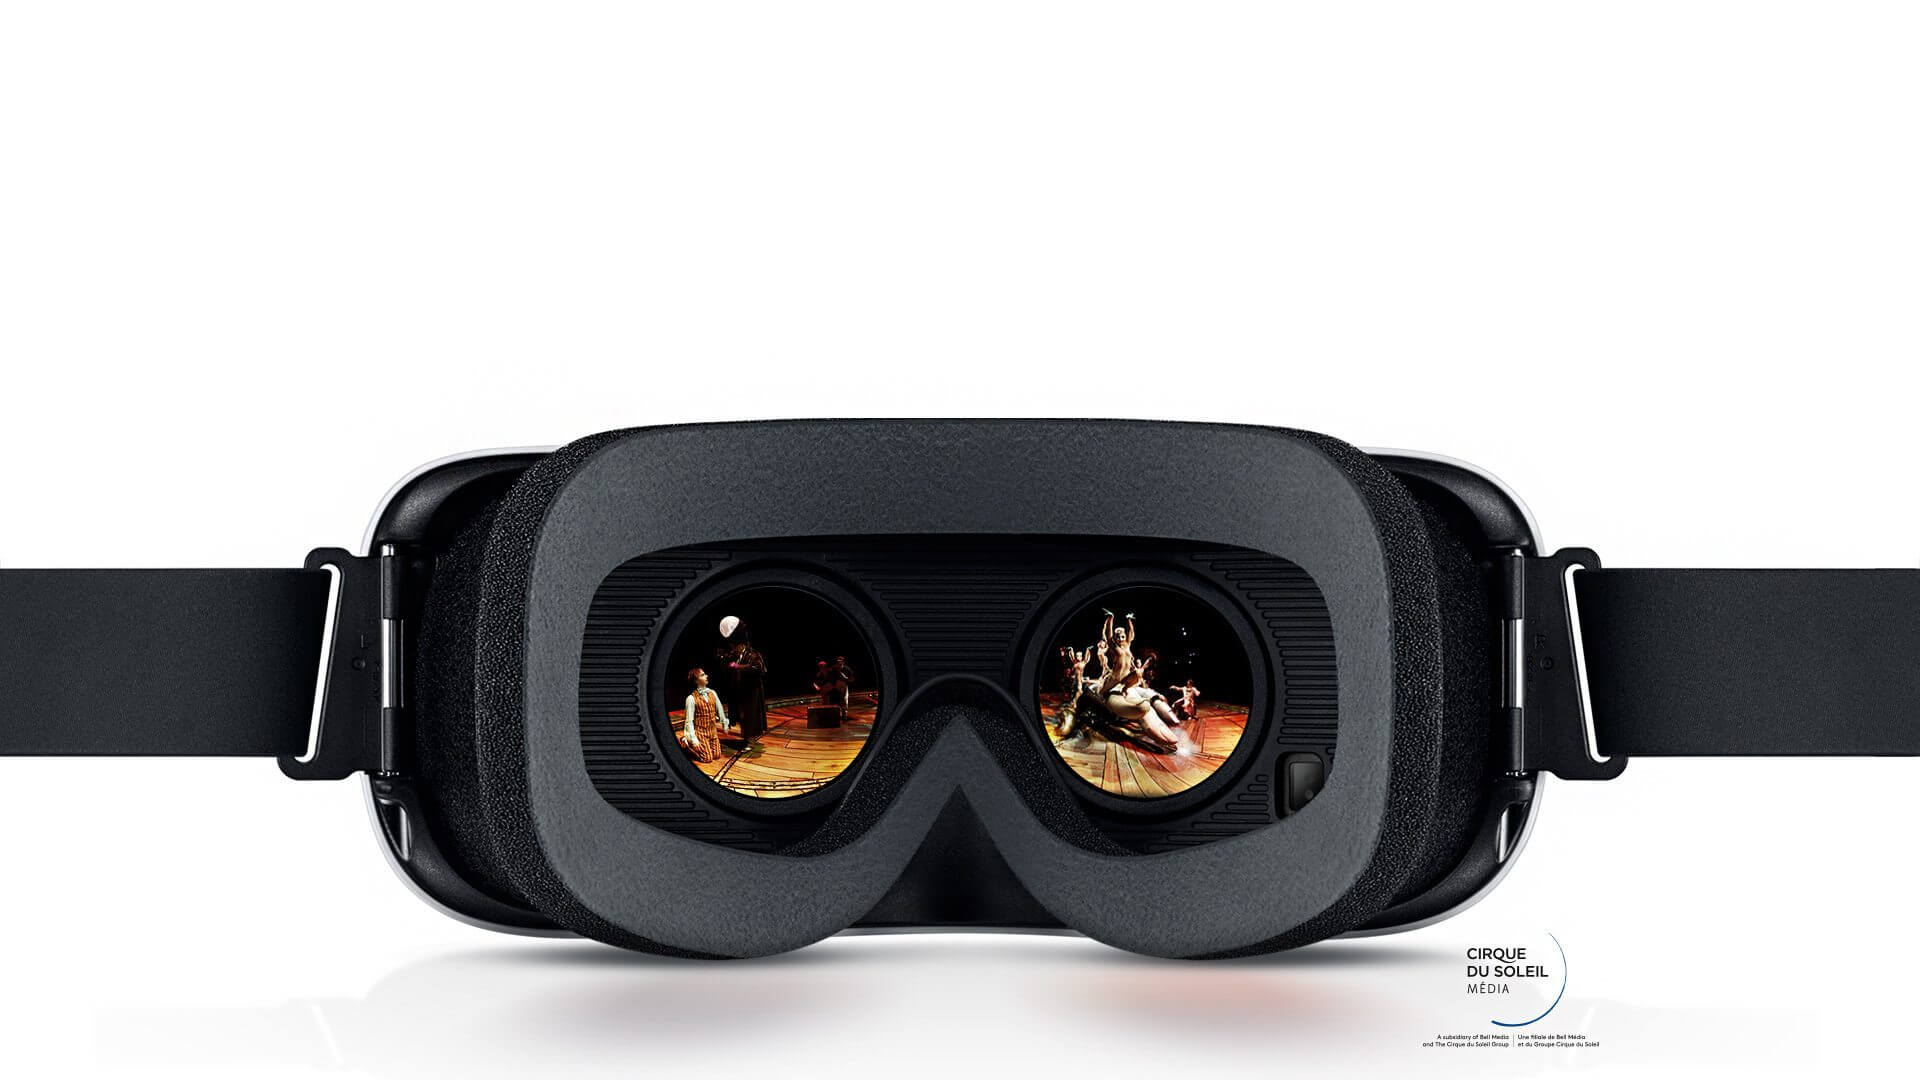 Gear vr feature unrivaled immersion